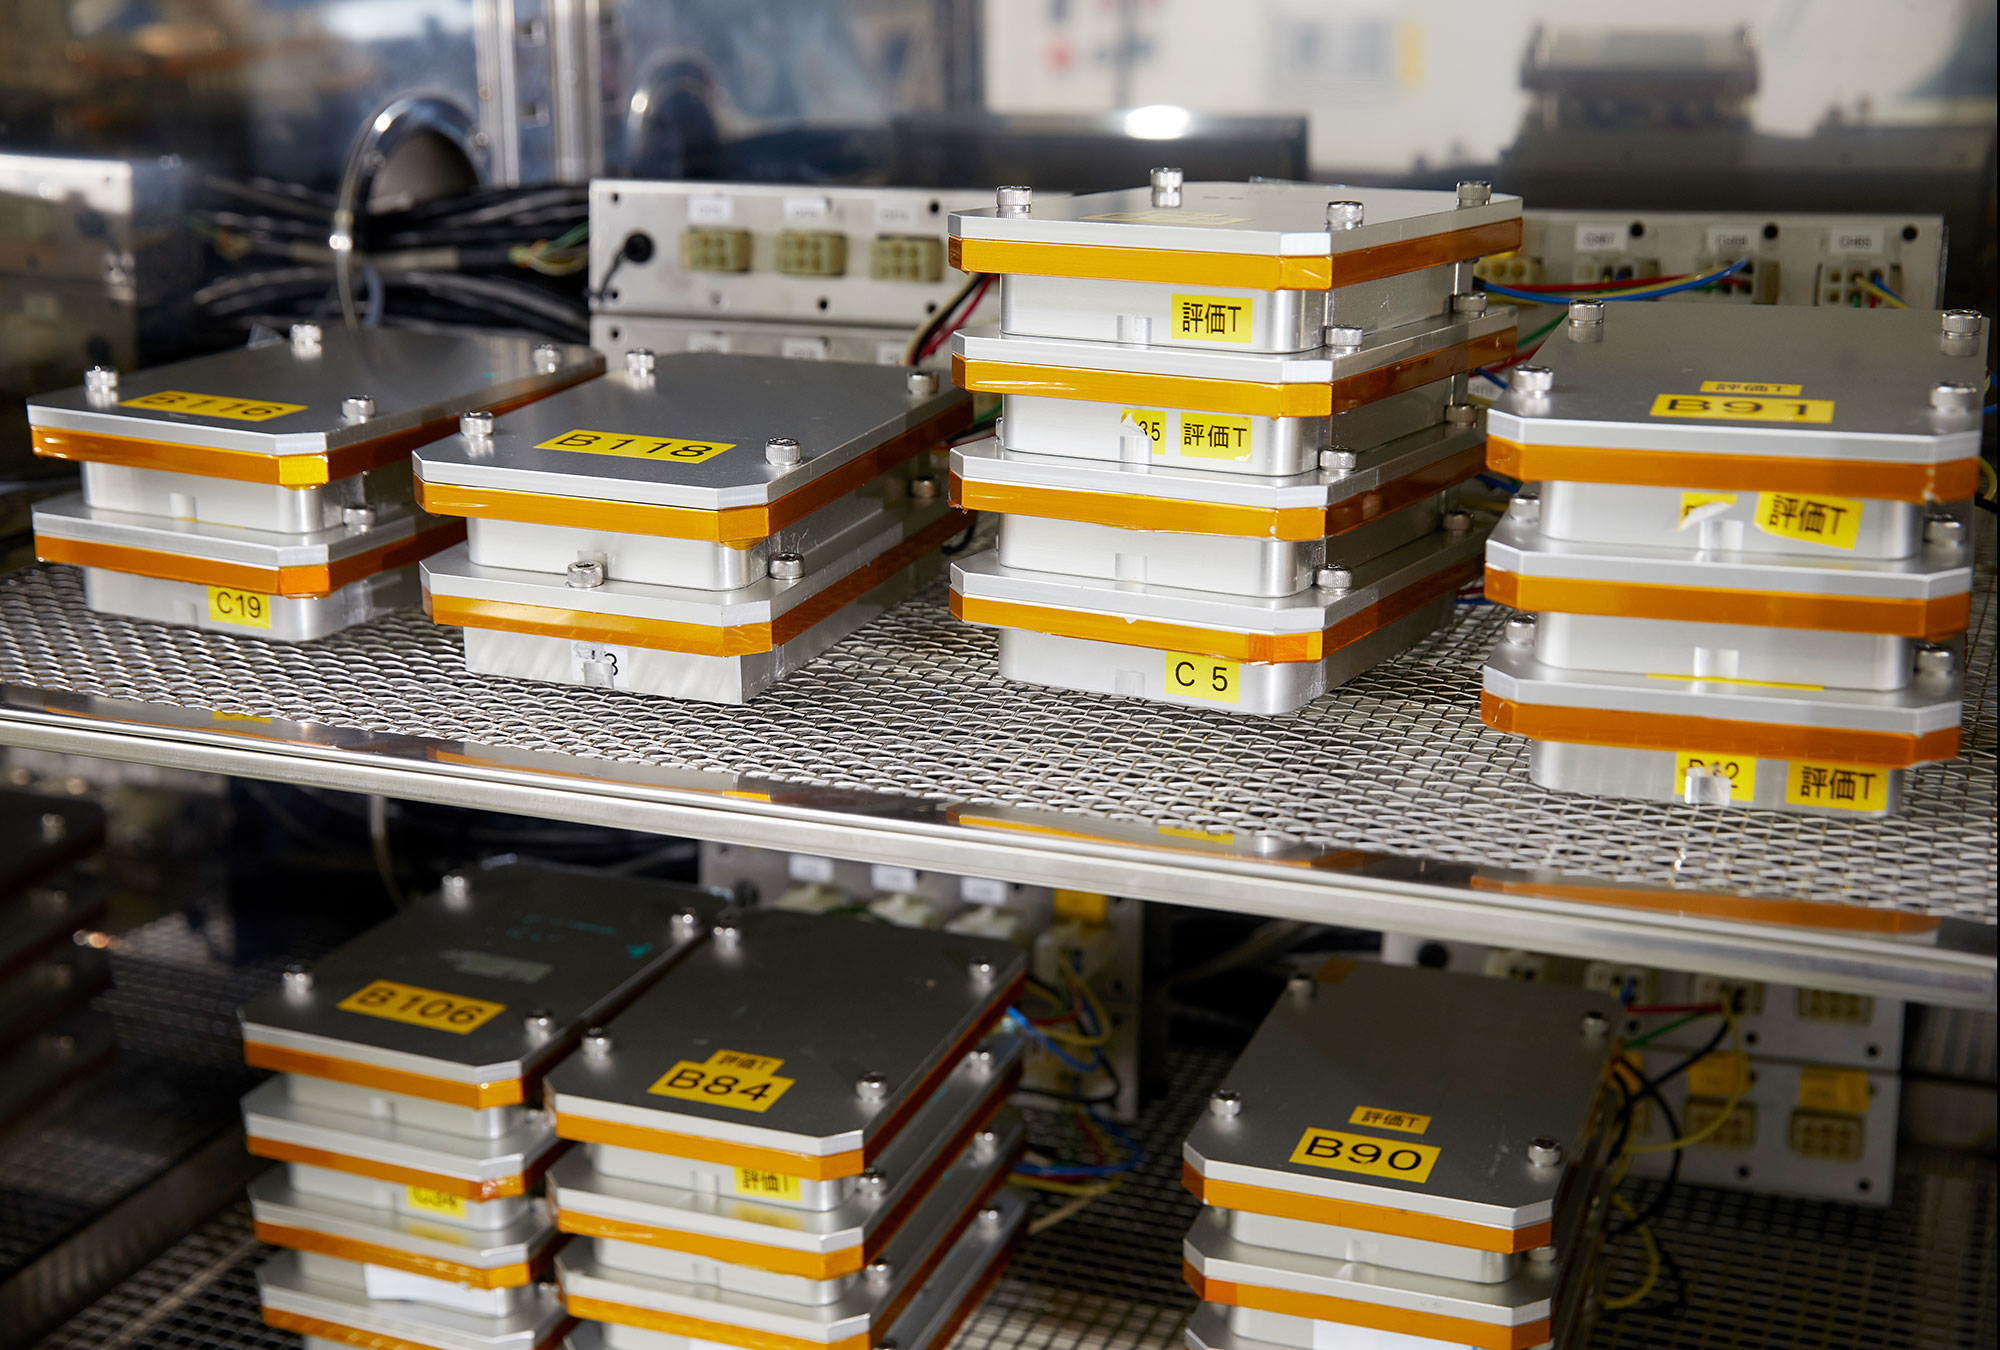 Stacks of unmounted lithium-ion batteries on metal shelves.